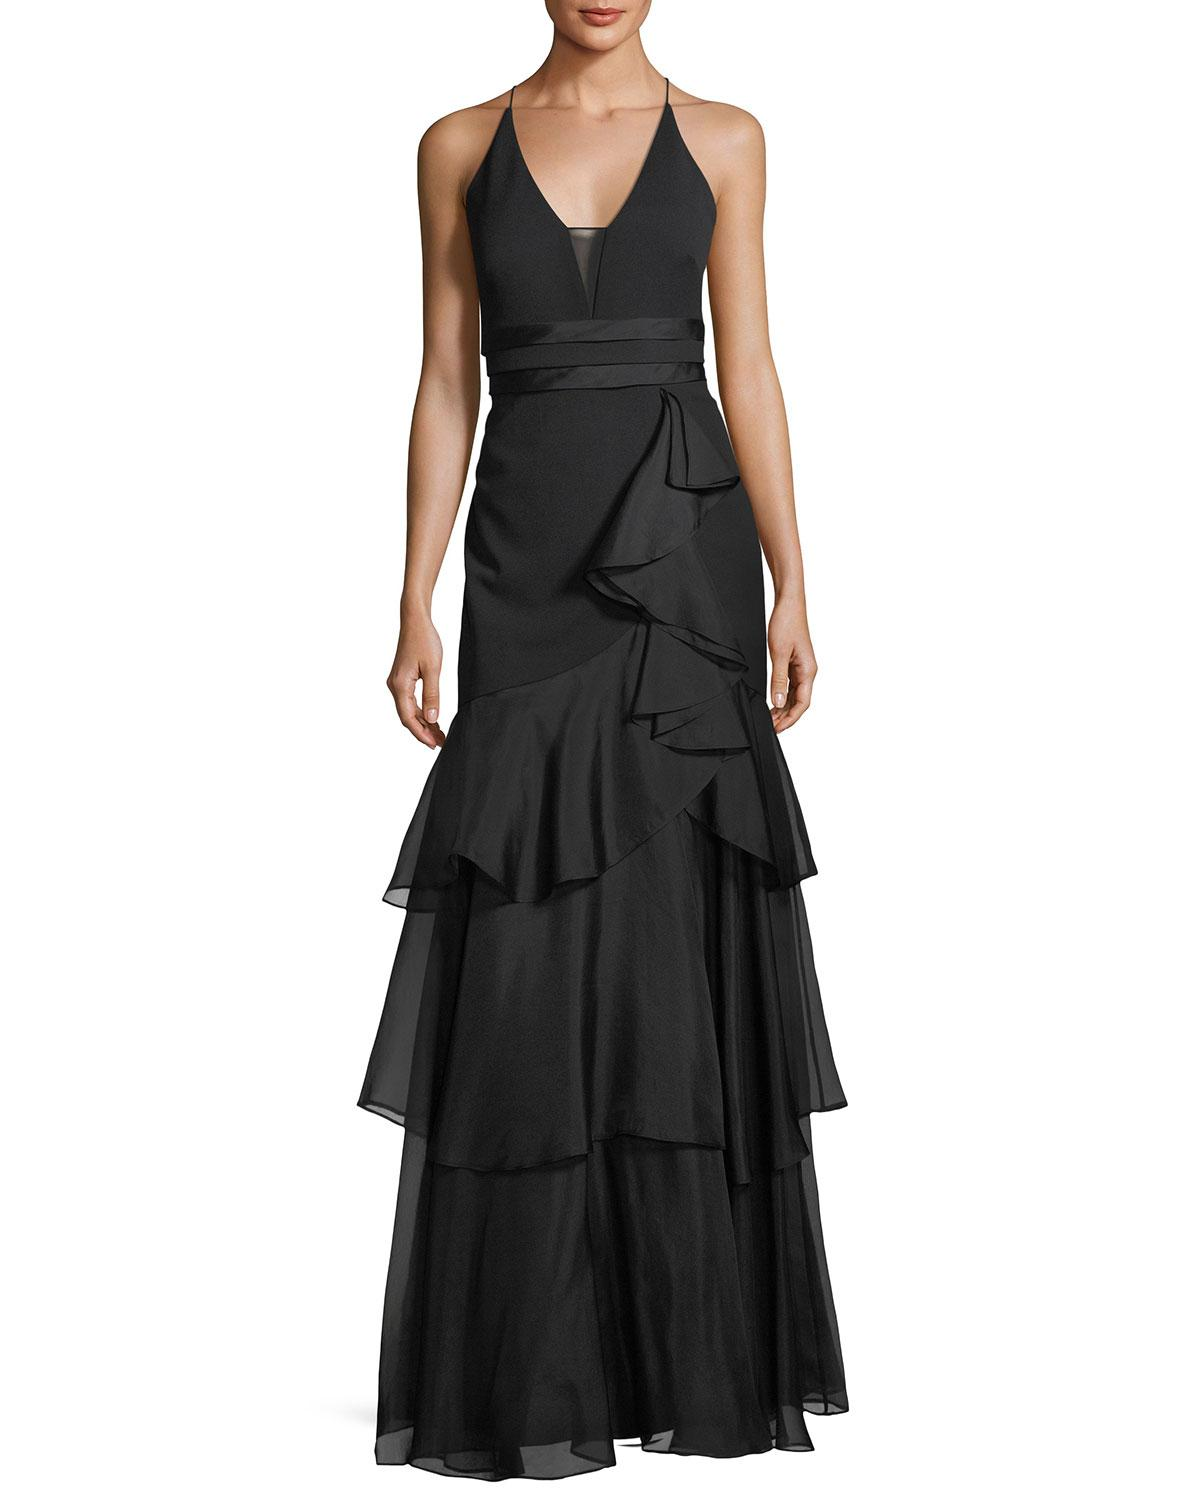 4bb2899cee3 Lyst - Aidan Mattox Tiered-ruffle Crepe Gown in Black - Save 50%